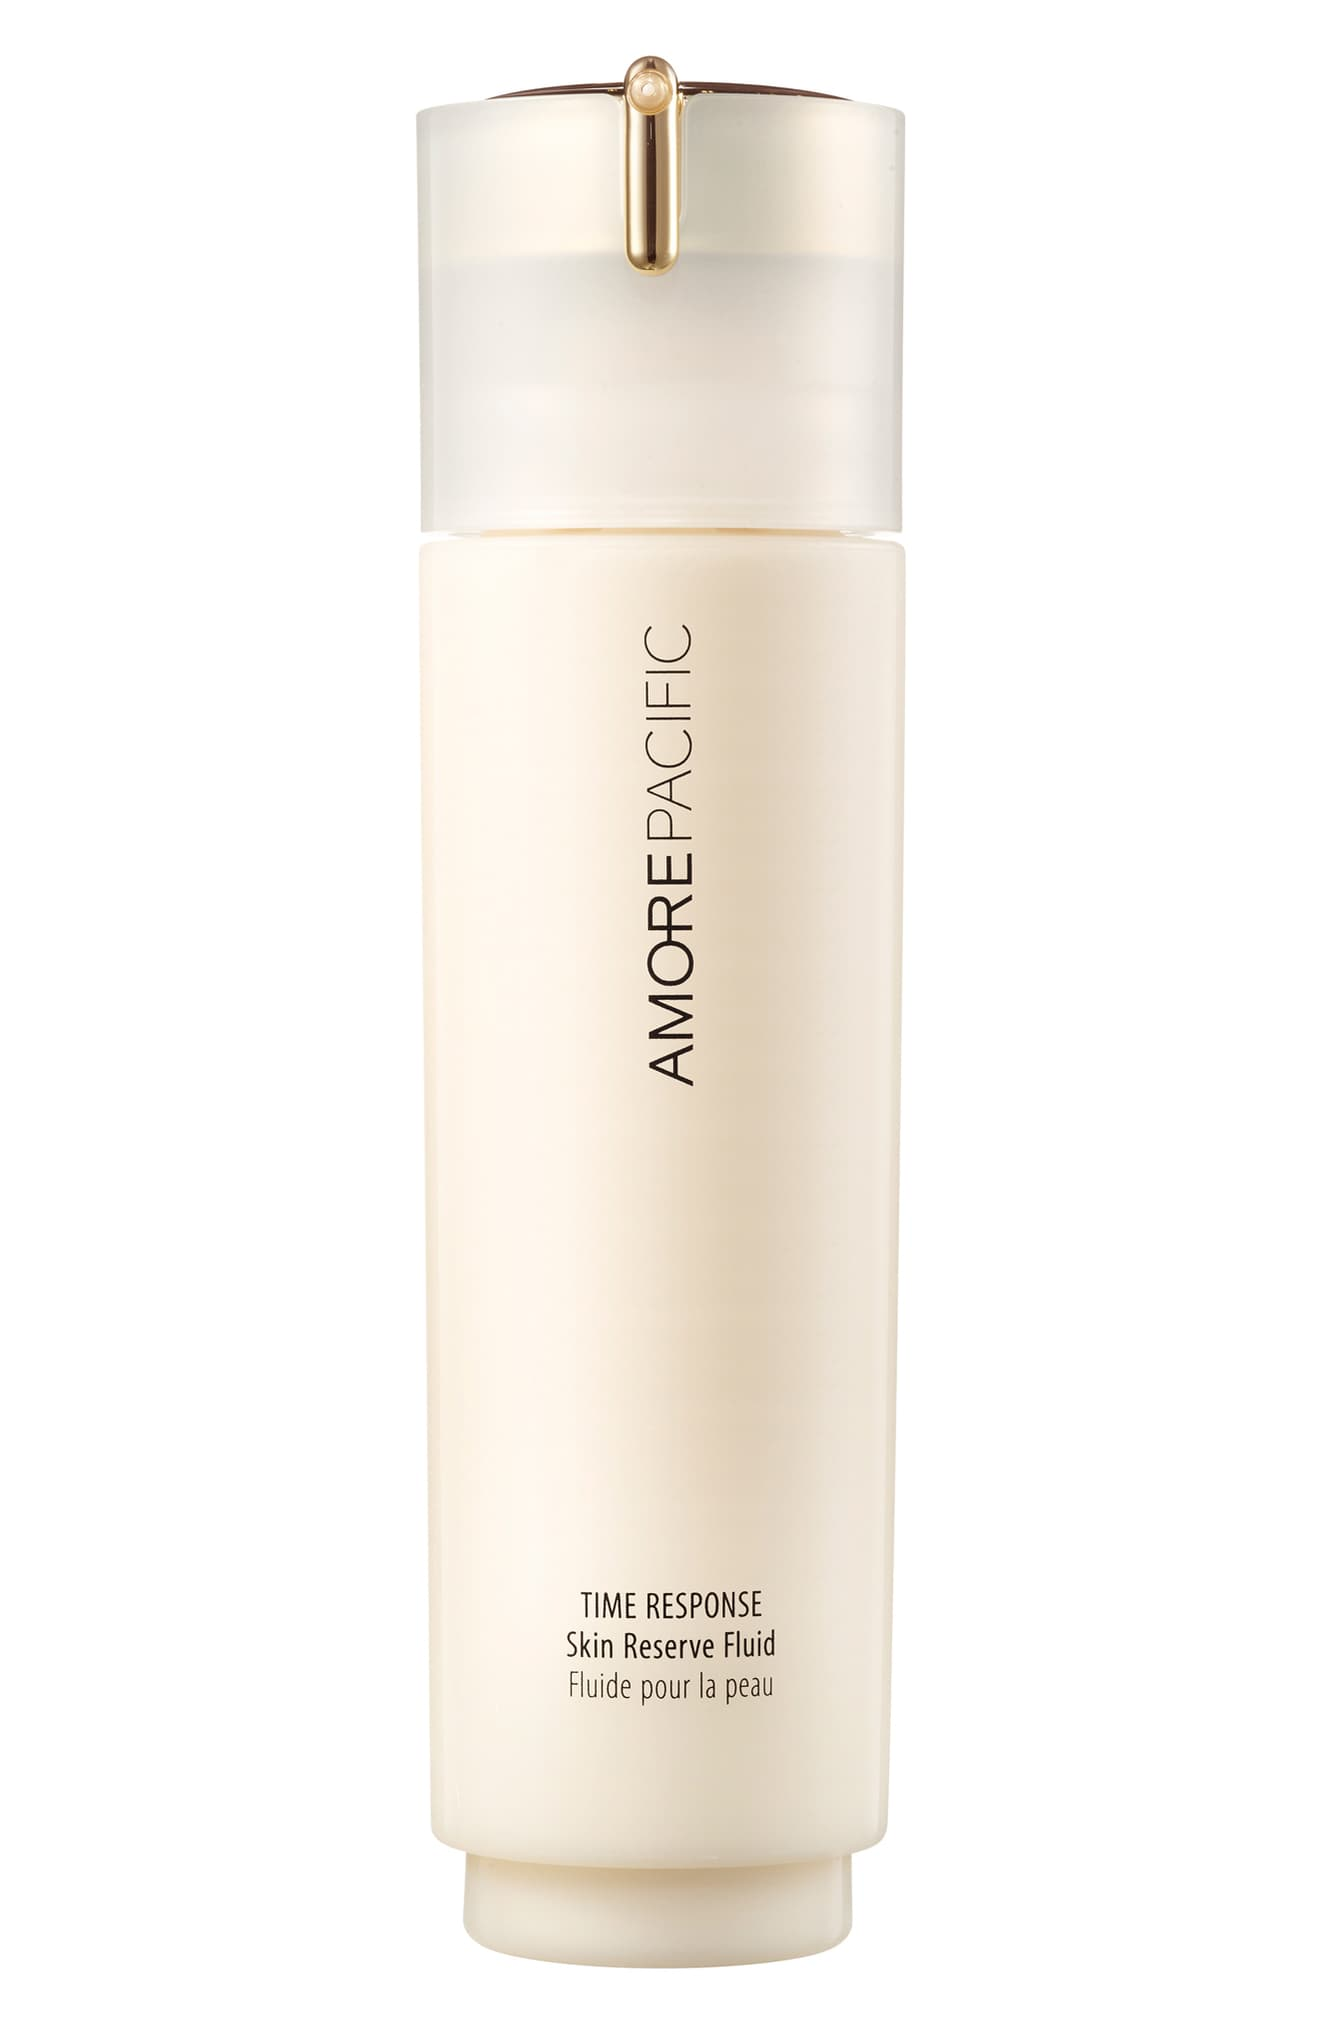 AMOREPACIFIC Time Response Skin Reserve Fluid